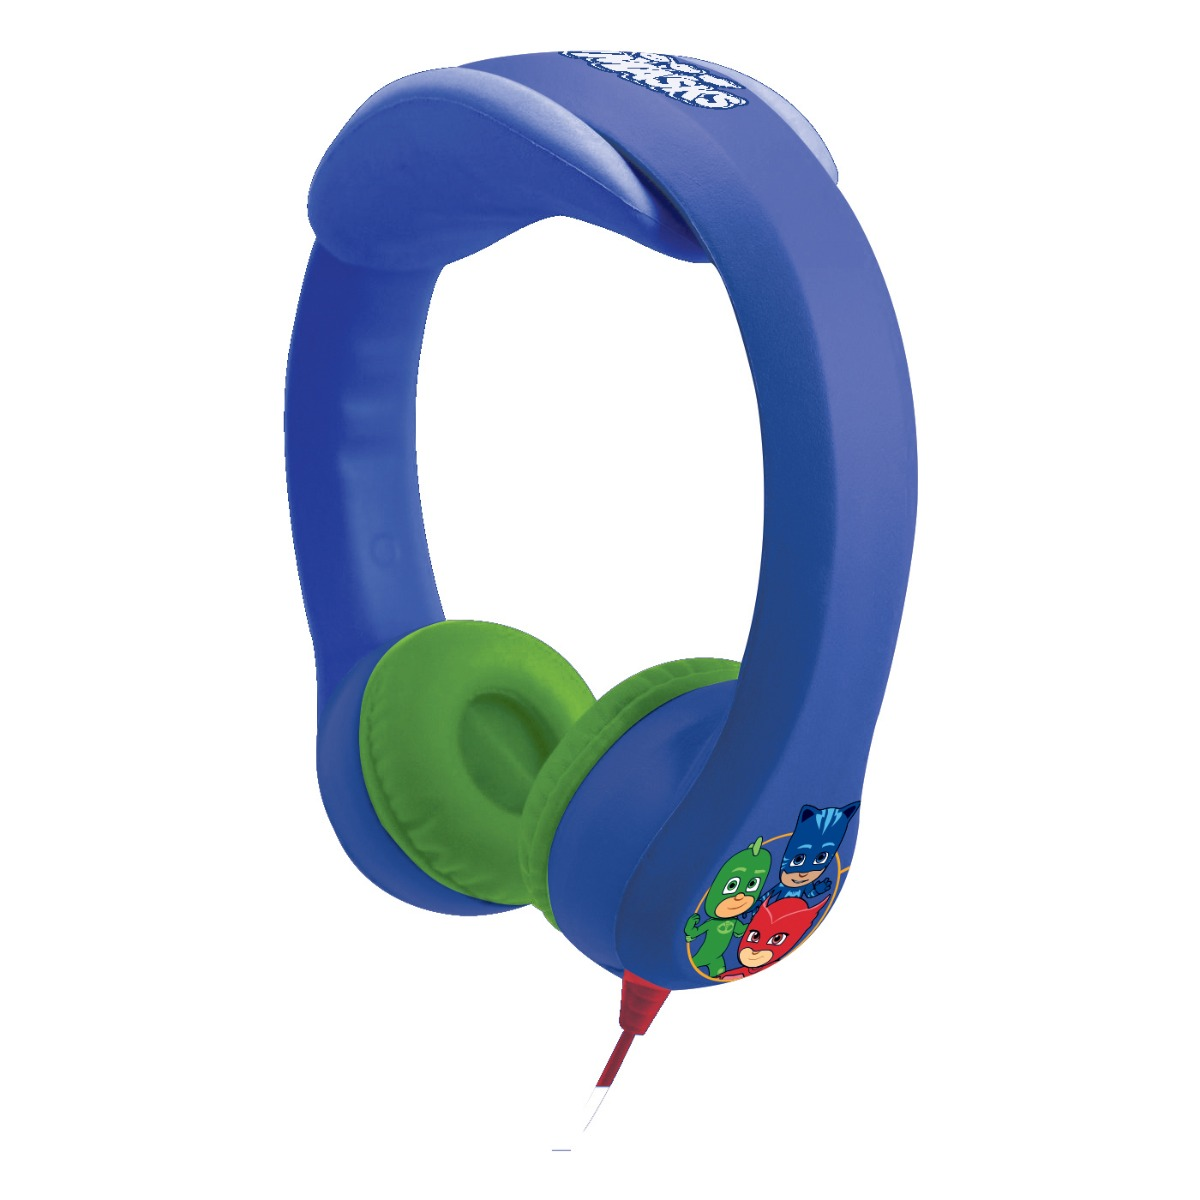 Casti audio cu fir pliabile, Pj Masks